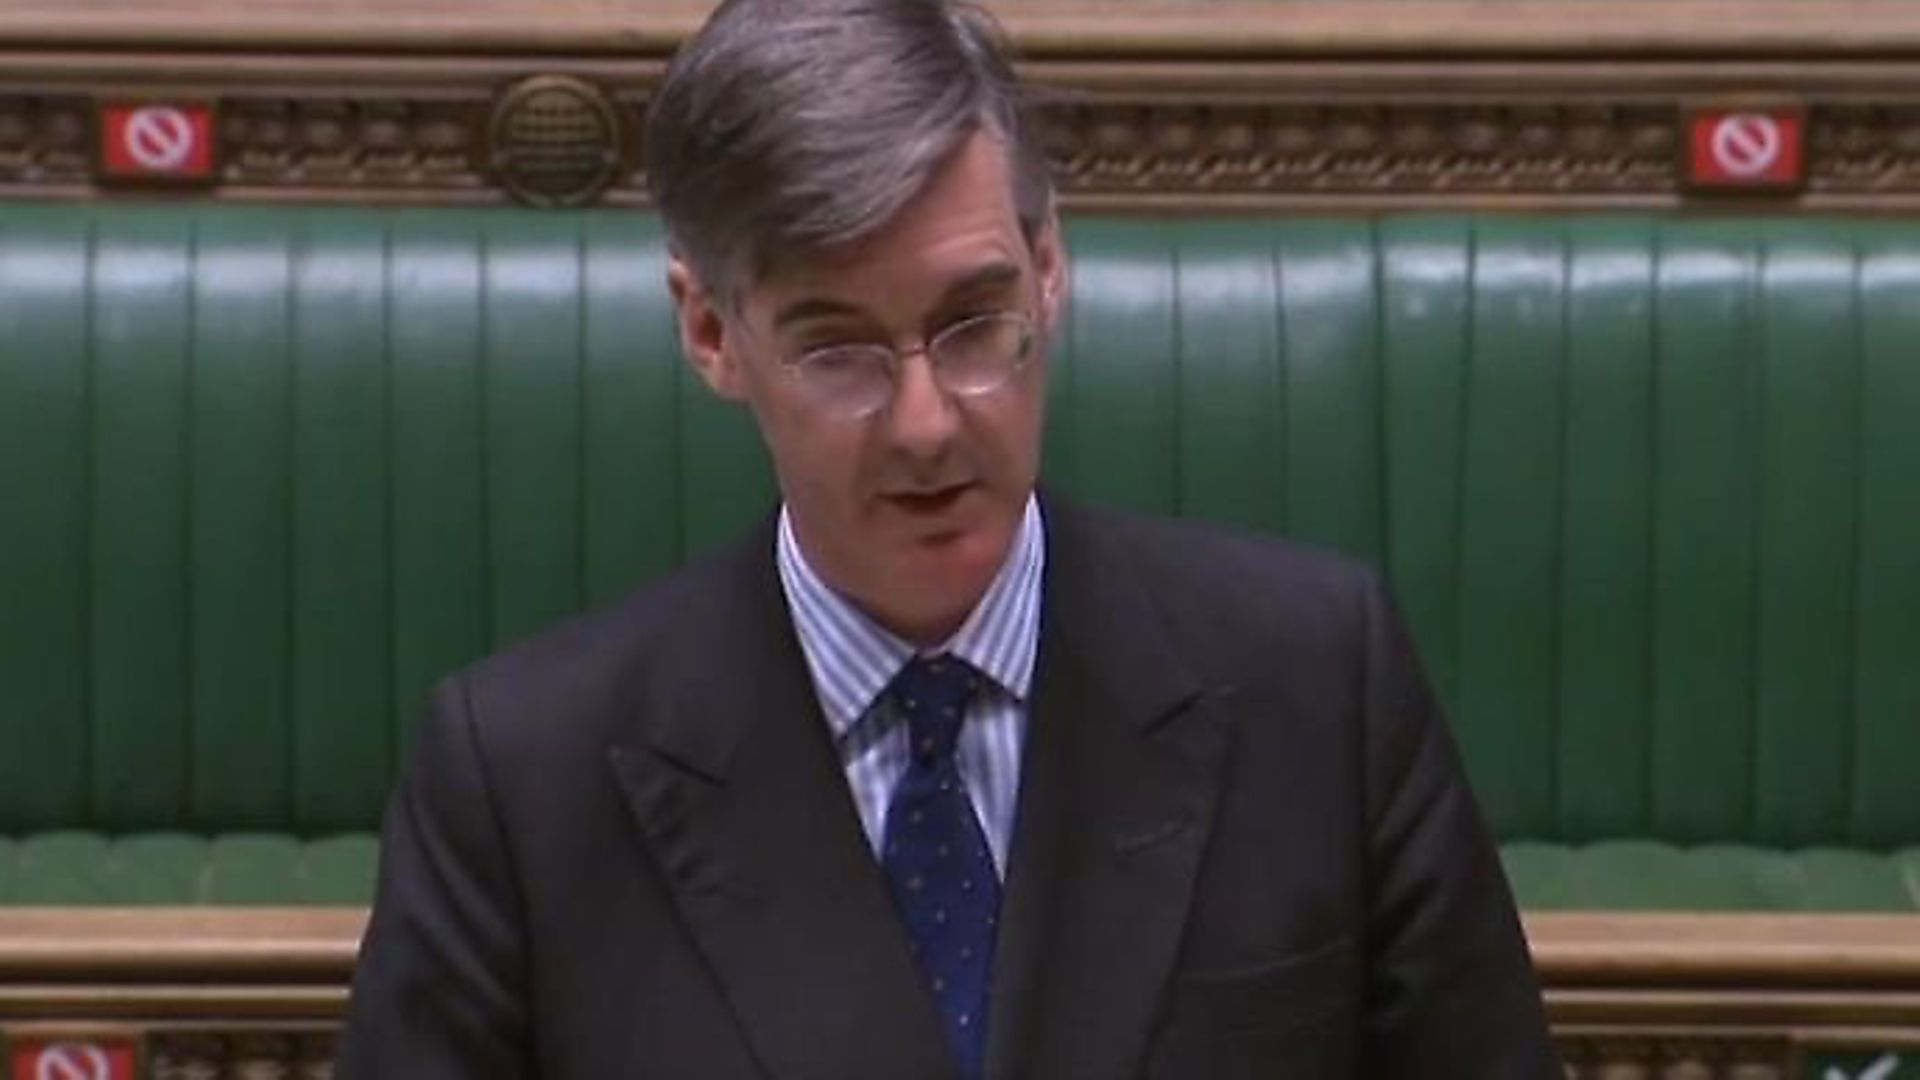 Jacob Rees-Mogg during a debate in the House of Commons. Photograph: Parliament TV. - Credit: Archant